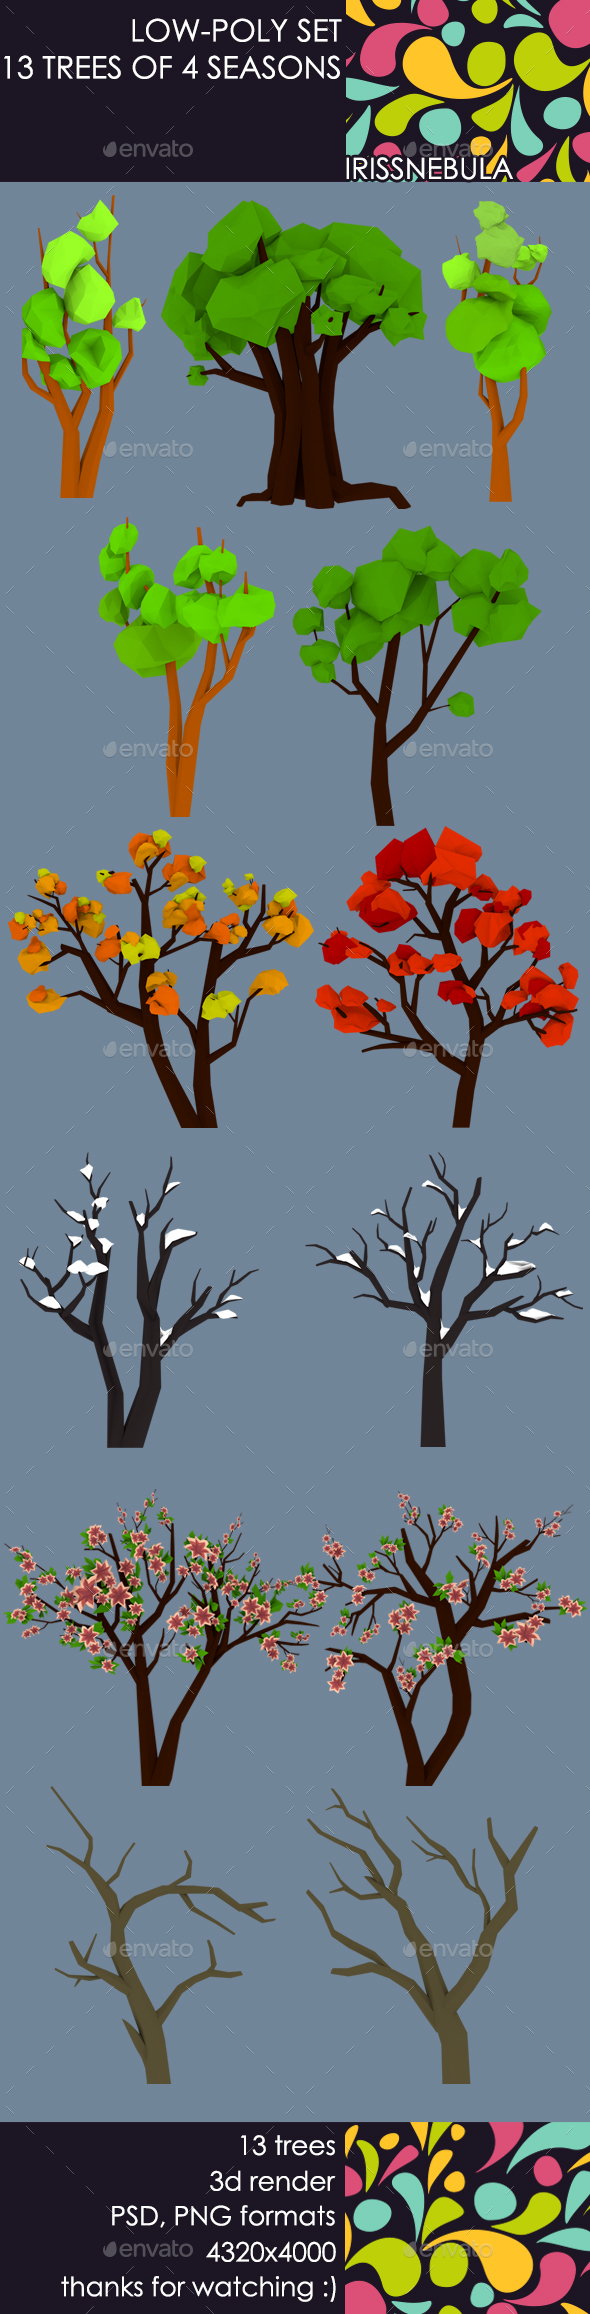 Low-Poly Set 13 Trees of 4 Seasons - Objects 3D Renders